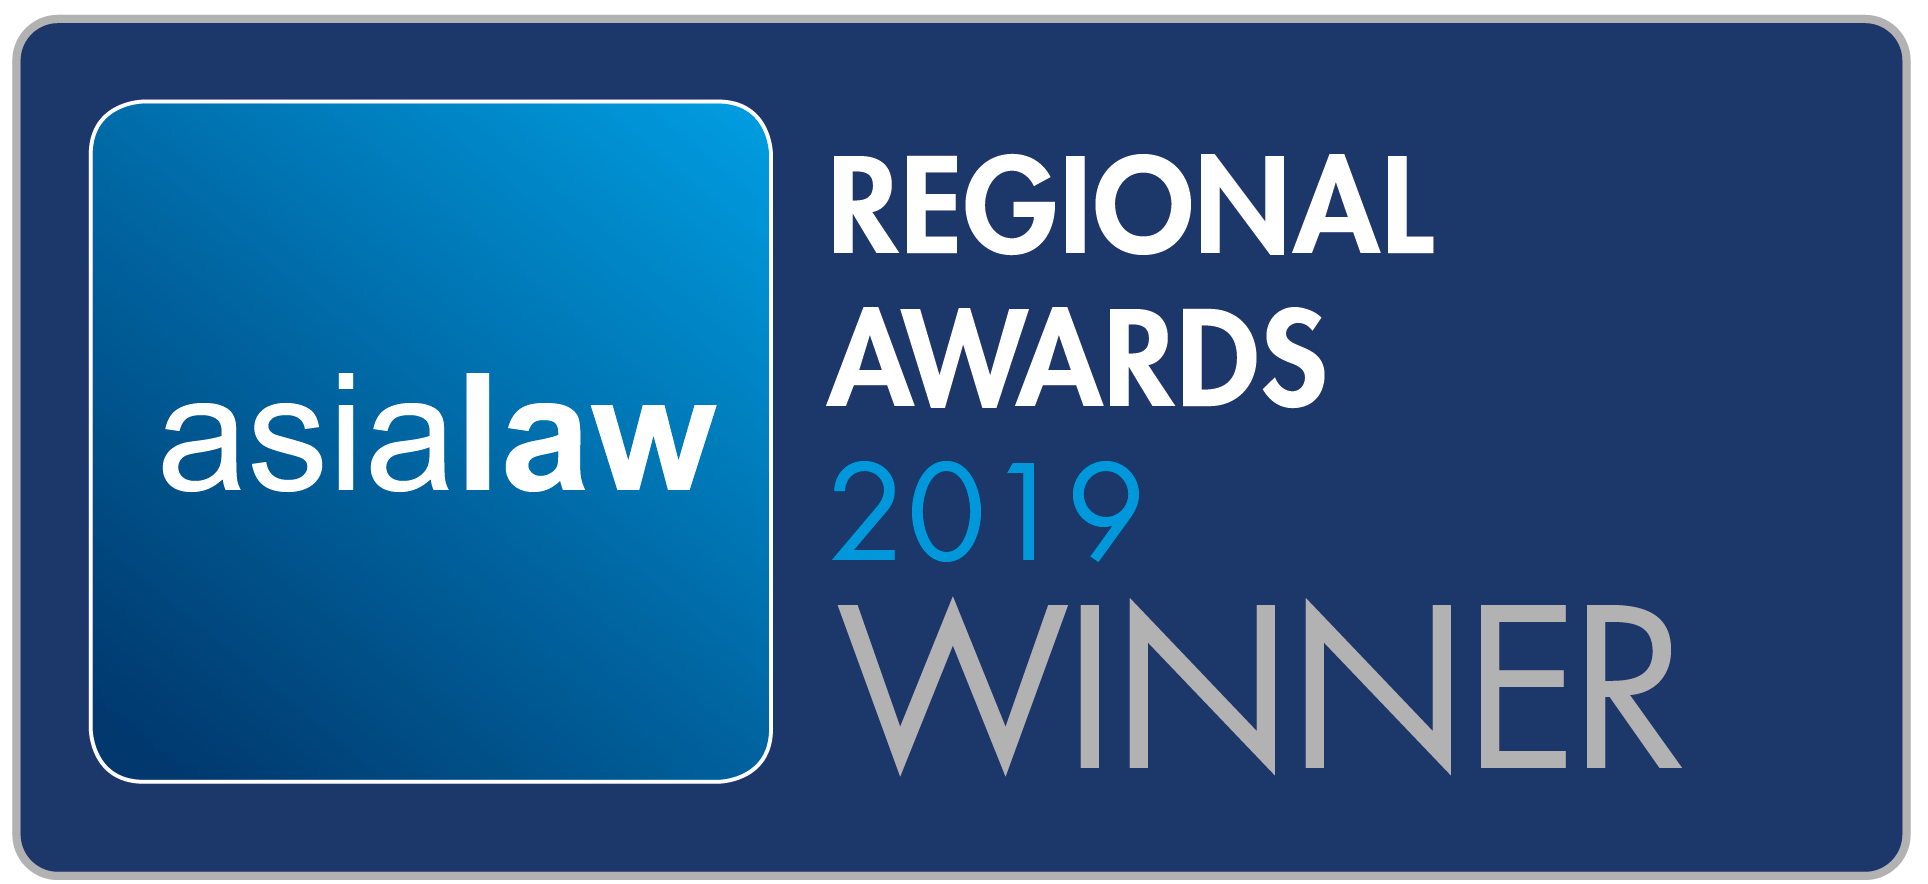 Asialaw Regional Awards - Winner emblem